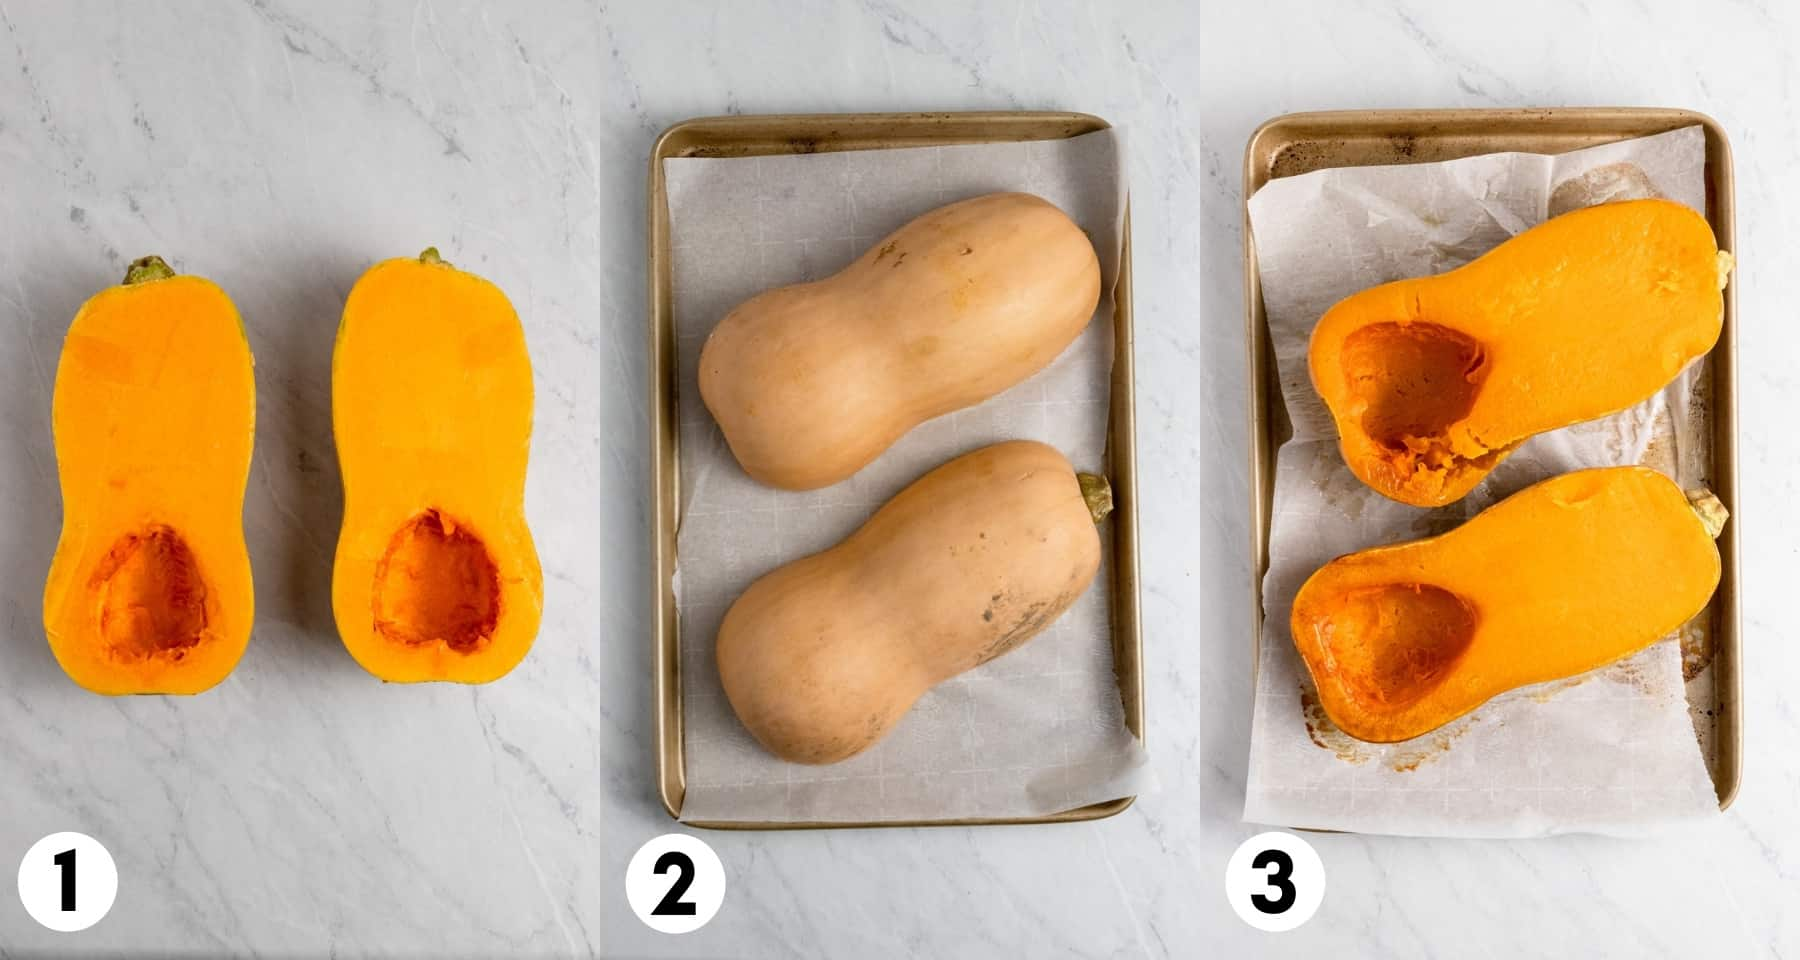 Butternut squash prepped to roast and then roasted.